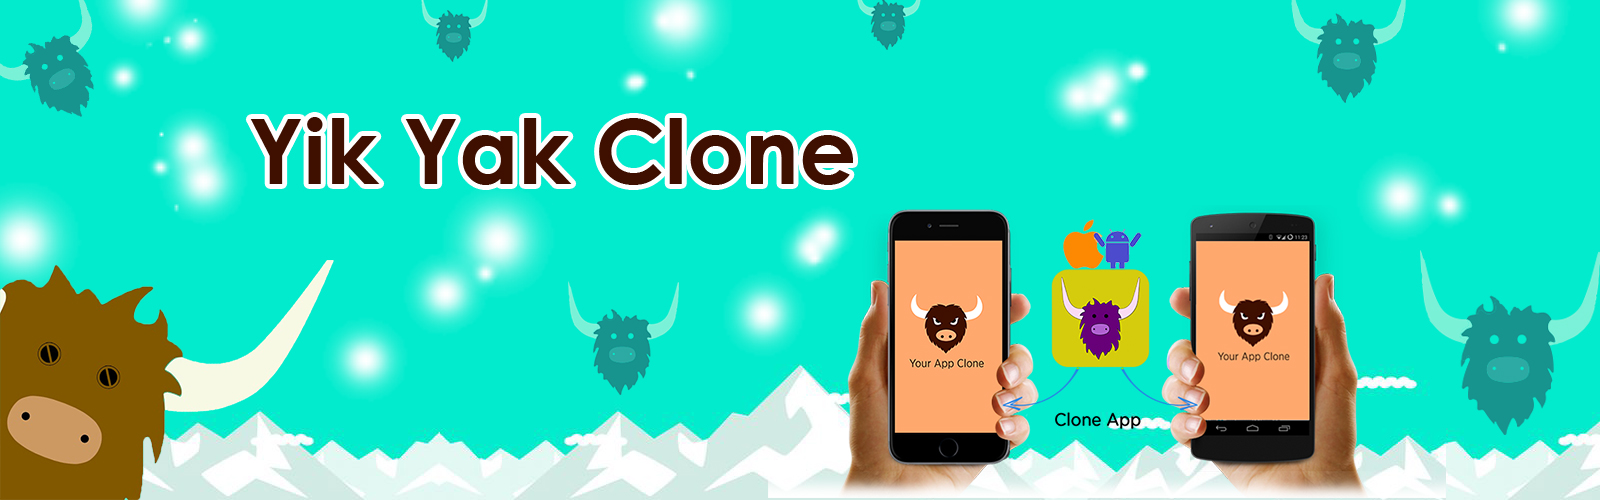 Clone App page